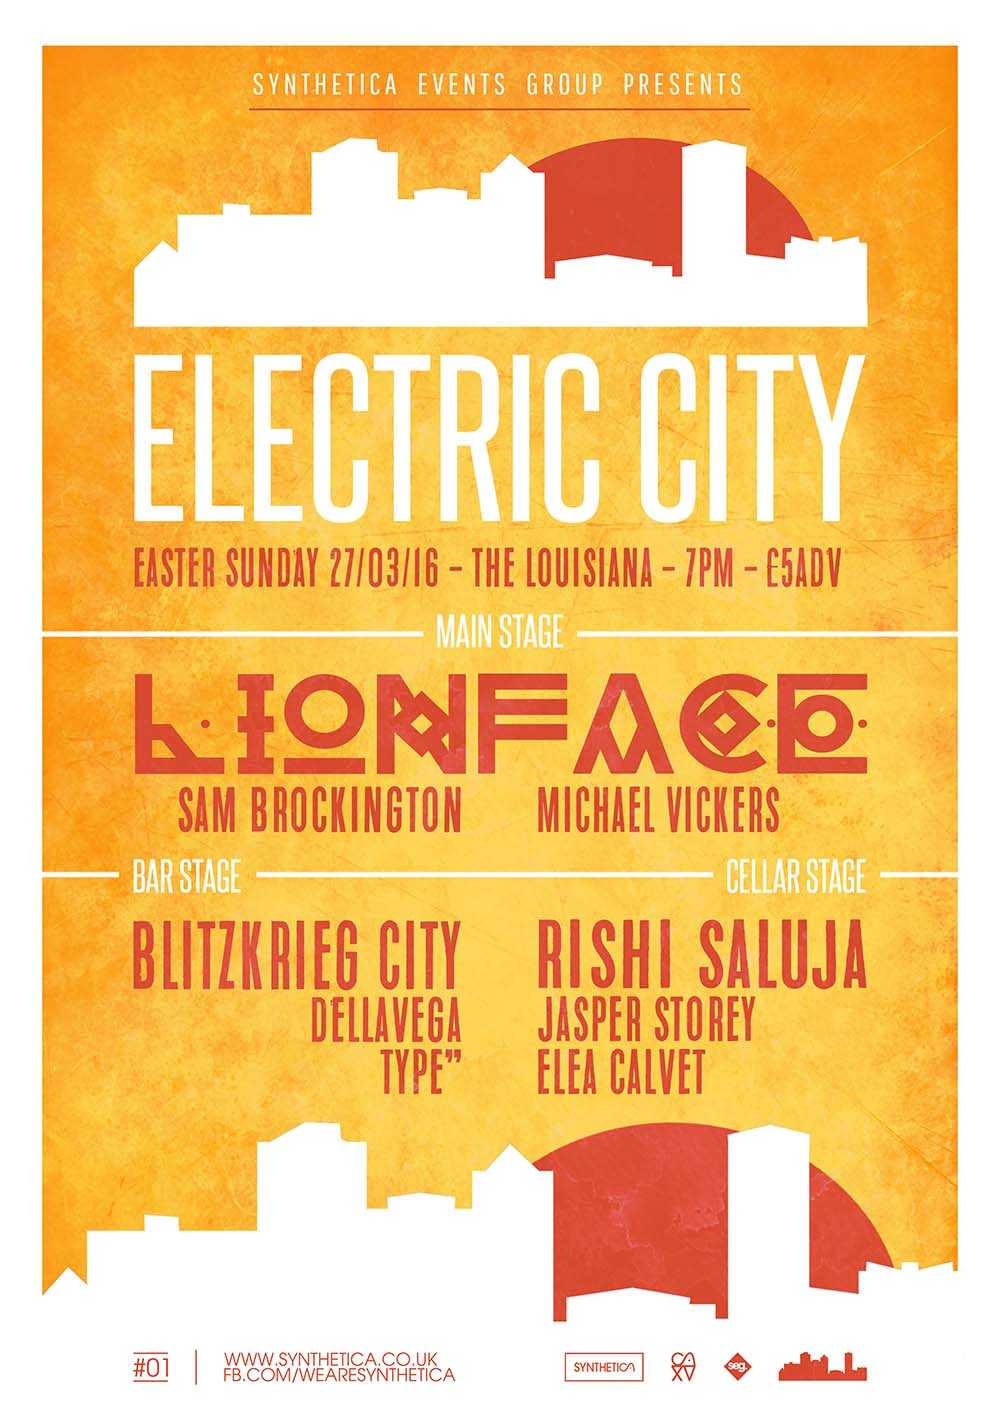 NEW SHOW ANNOUNCED: ELECTRIC CITY, THE LAUNCH!